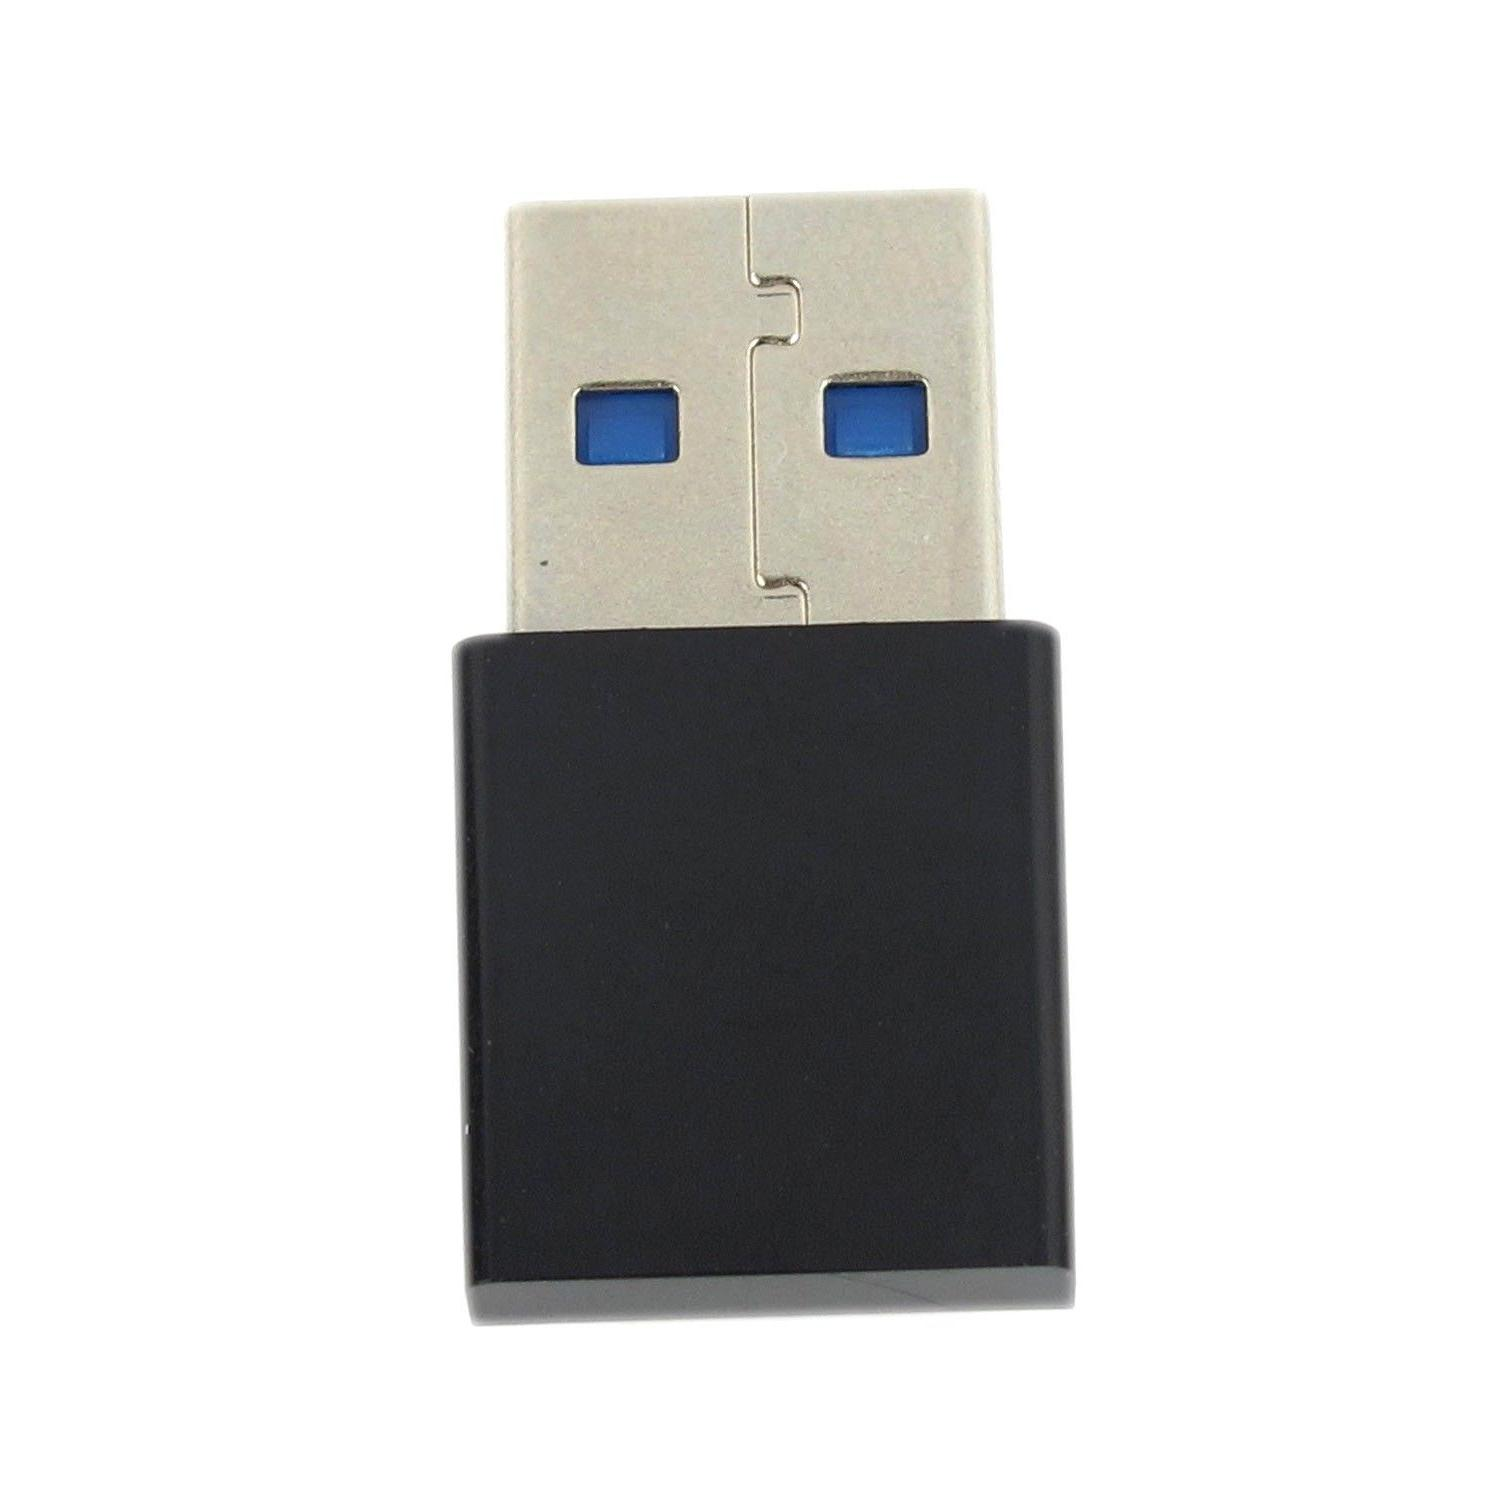 New! 5Gbps Speed 3.0 SD Memory Card Reader Adapter